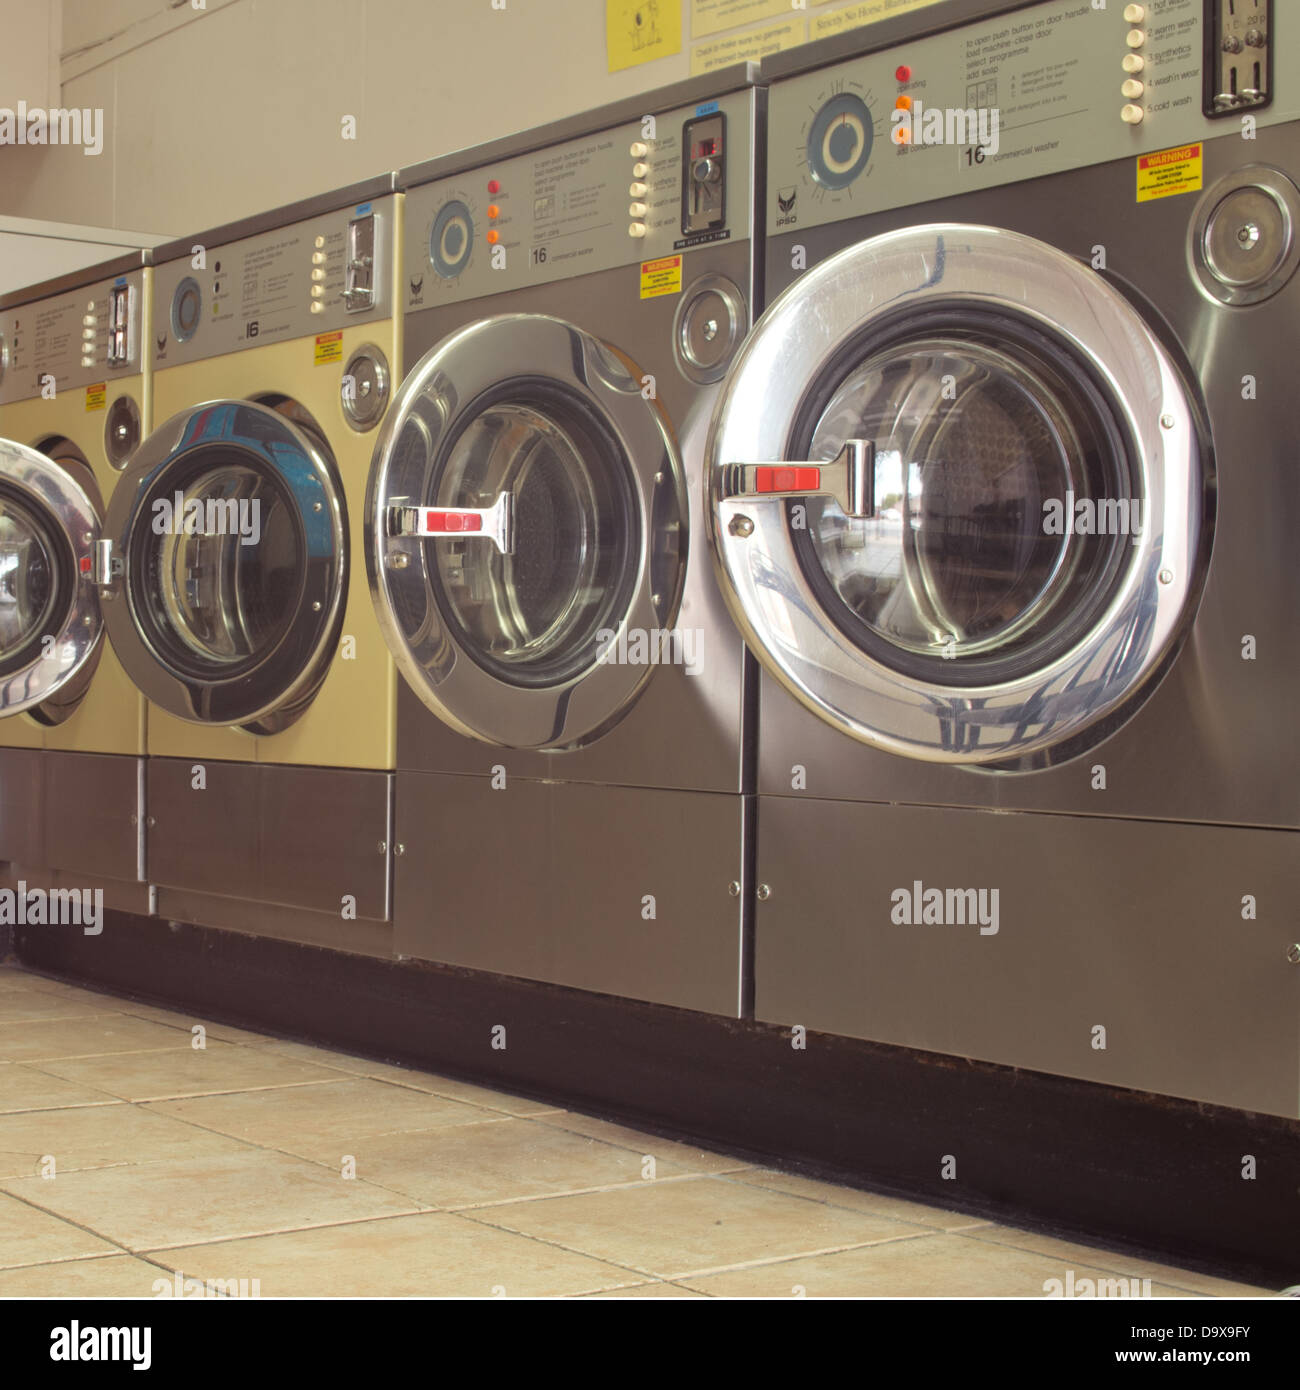 Row of coin operated stainless steel washing machines in Laundrette - Stock Image